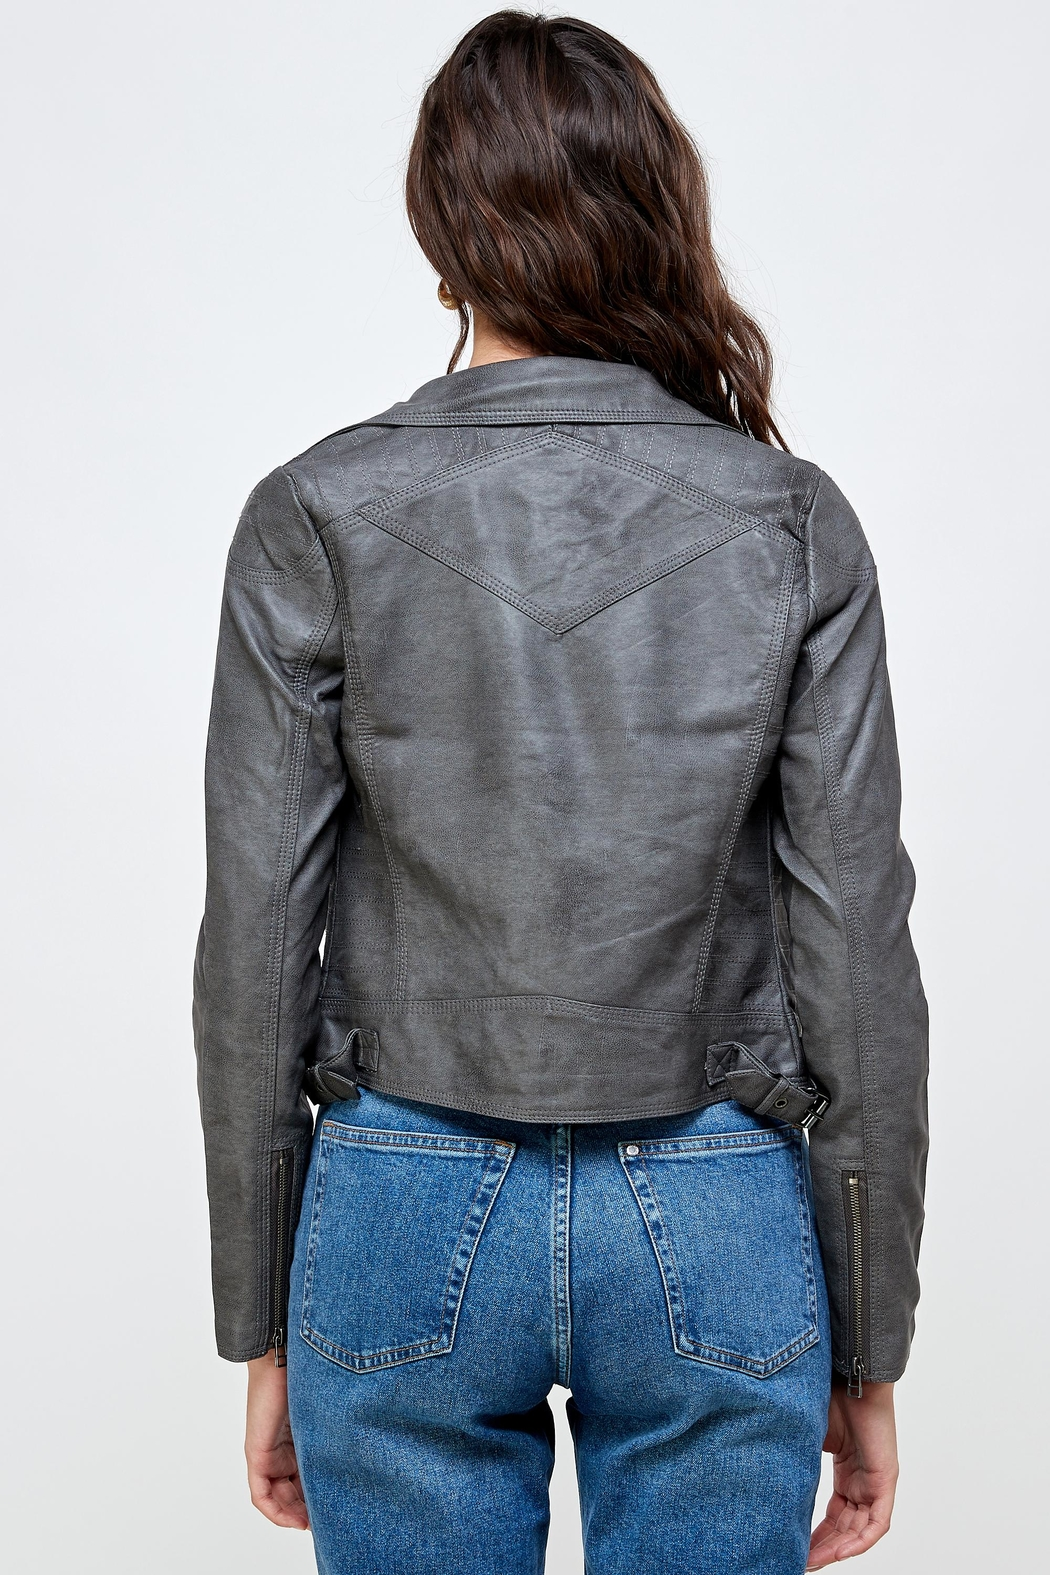 Kaii Stitch Vegan Leather Biker Jacket Top - Back Cropped Image